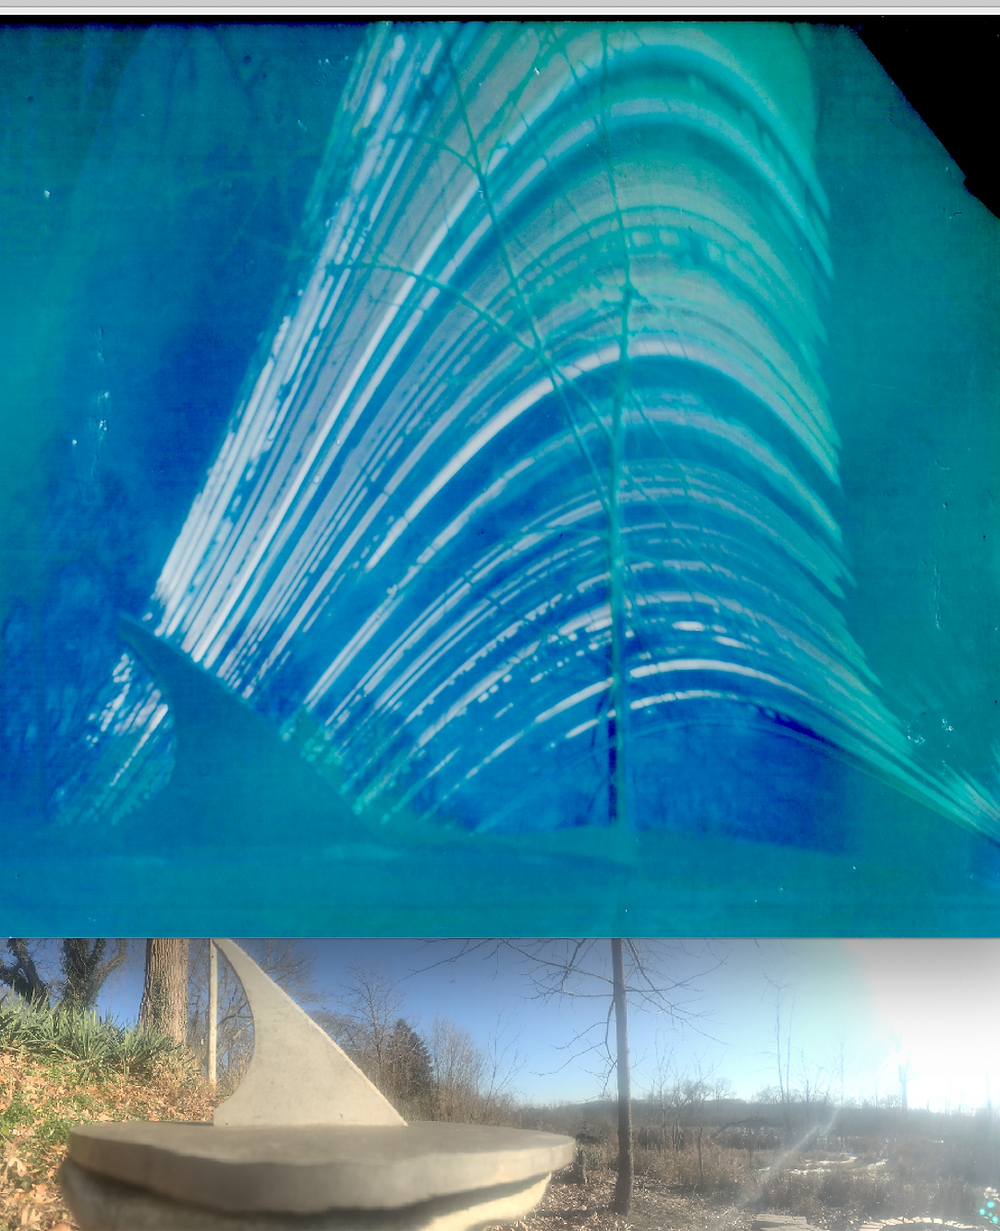 Sundial solargraph paired with panorama